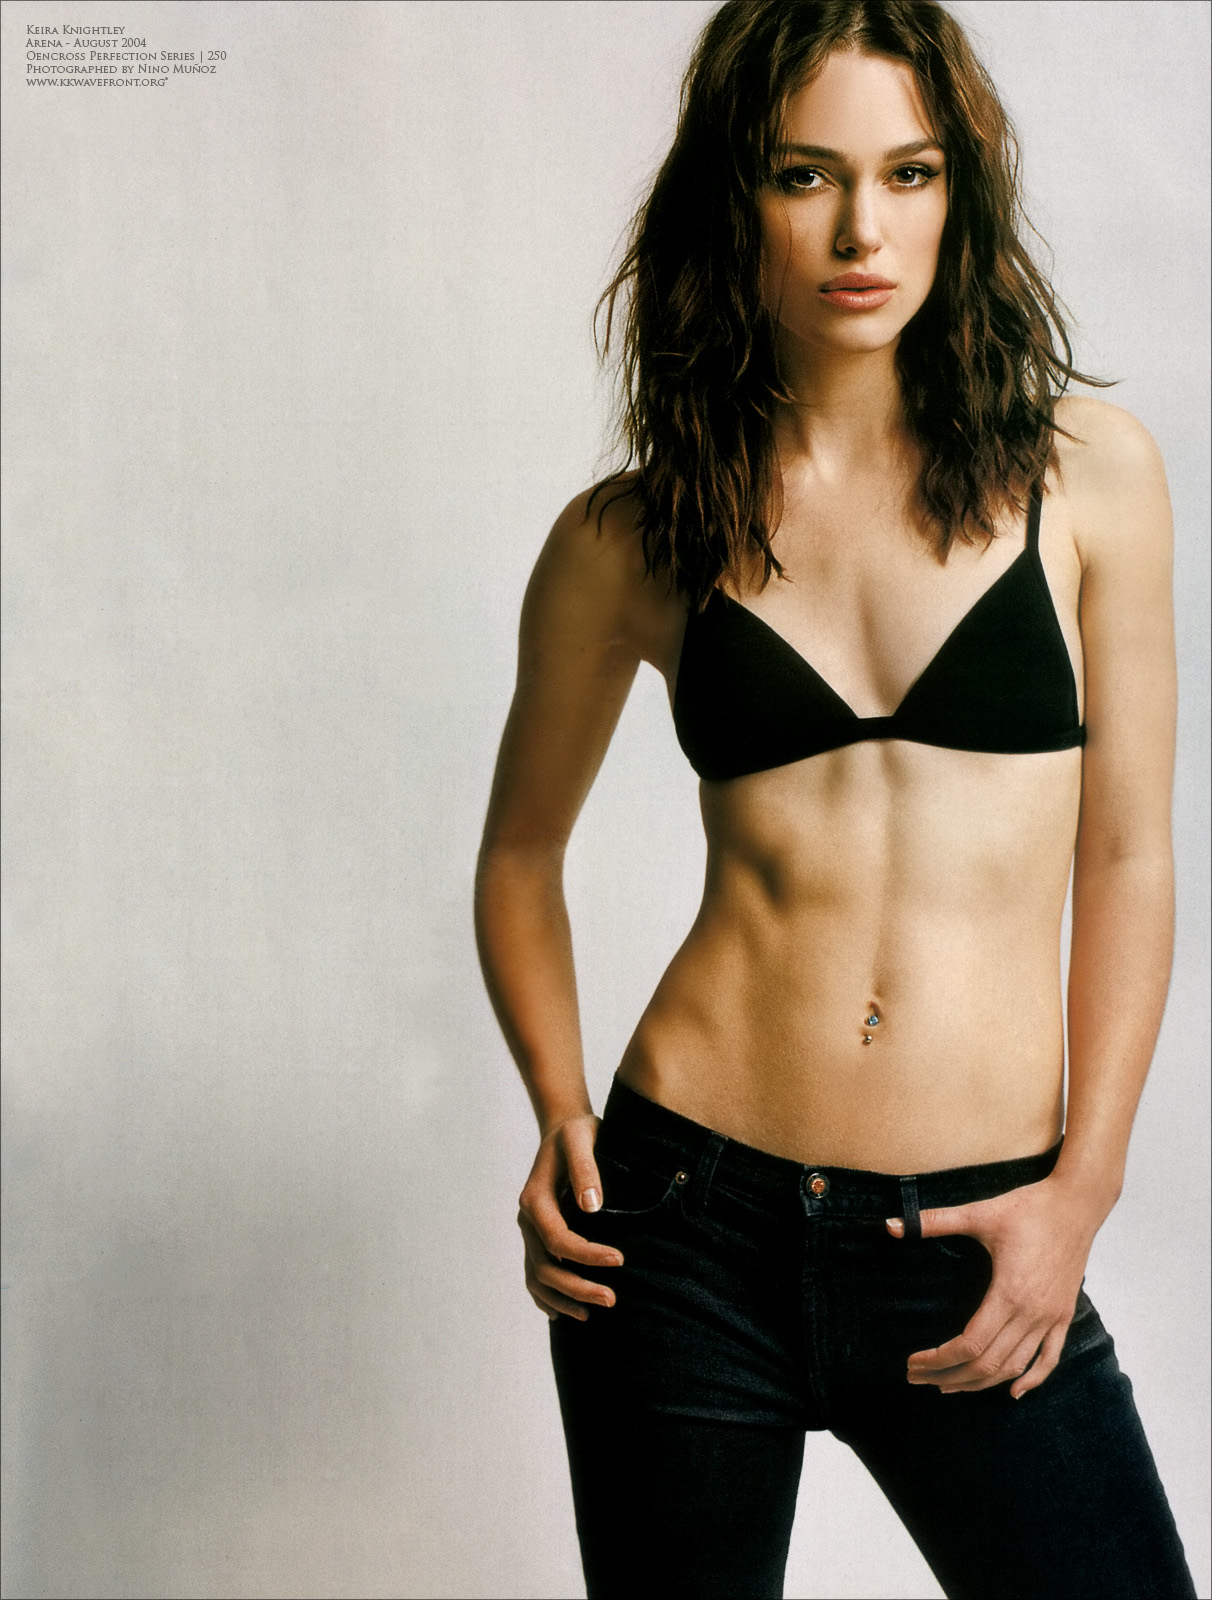 Watch NUDE video here. #39; What do guys think of Keira Knightley